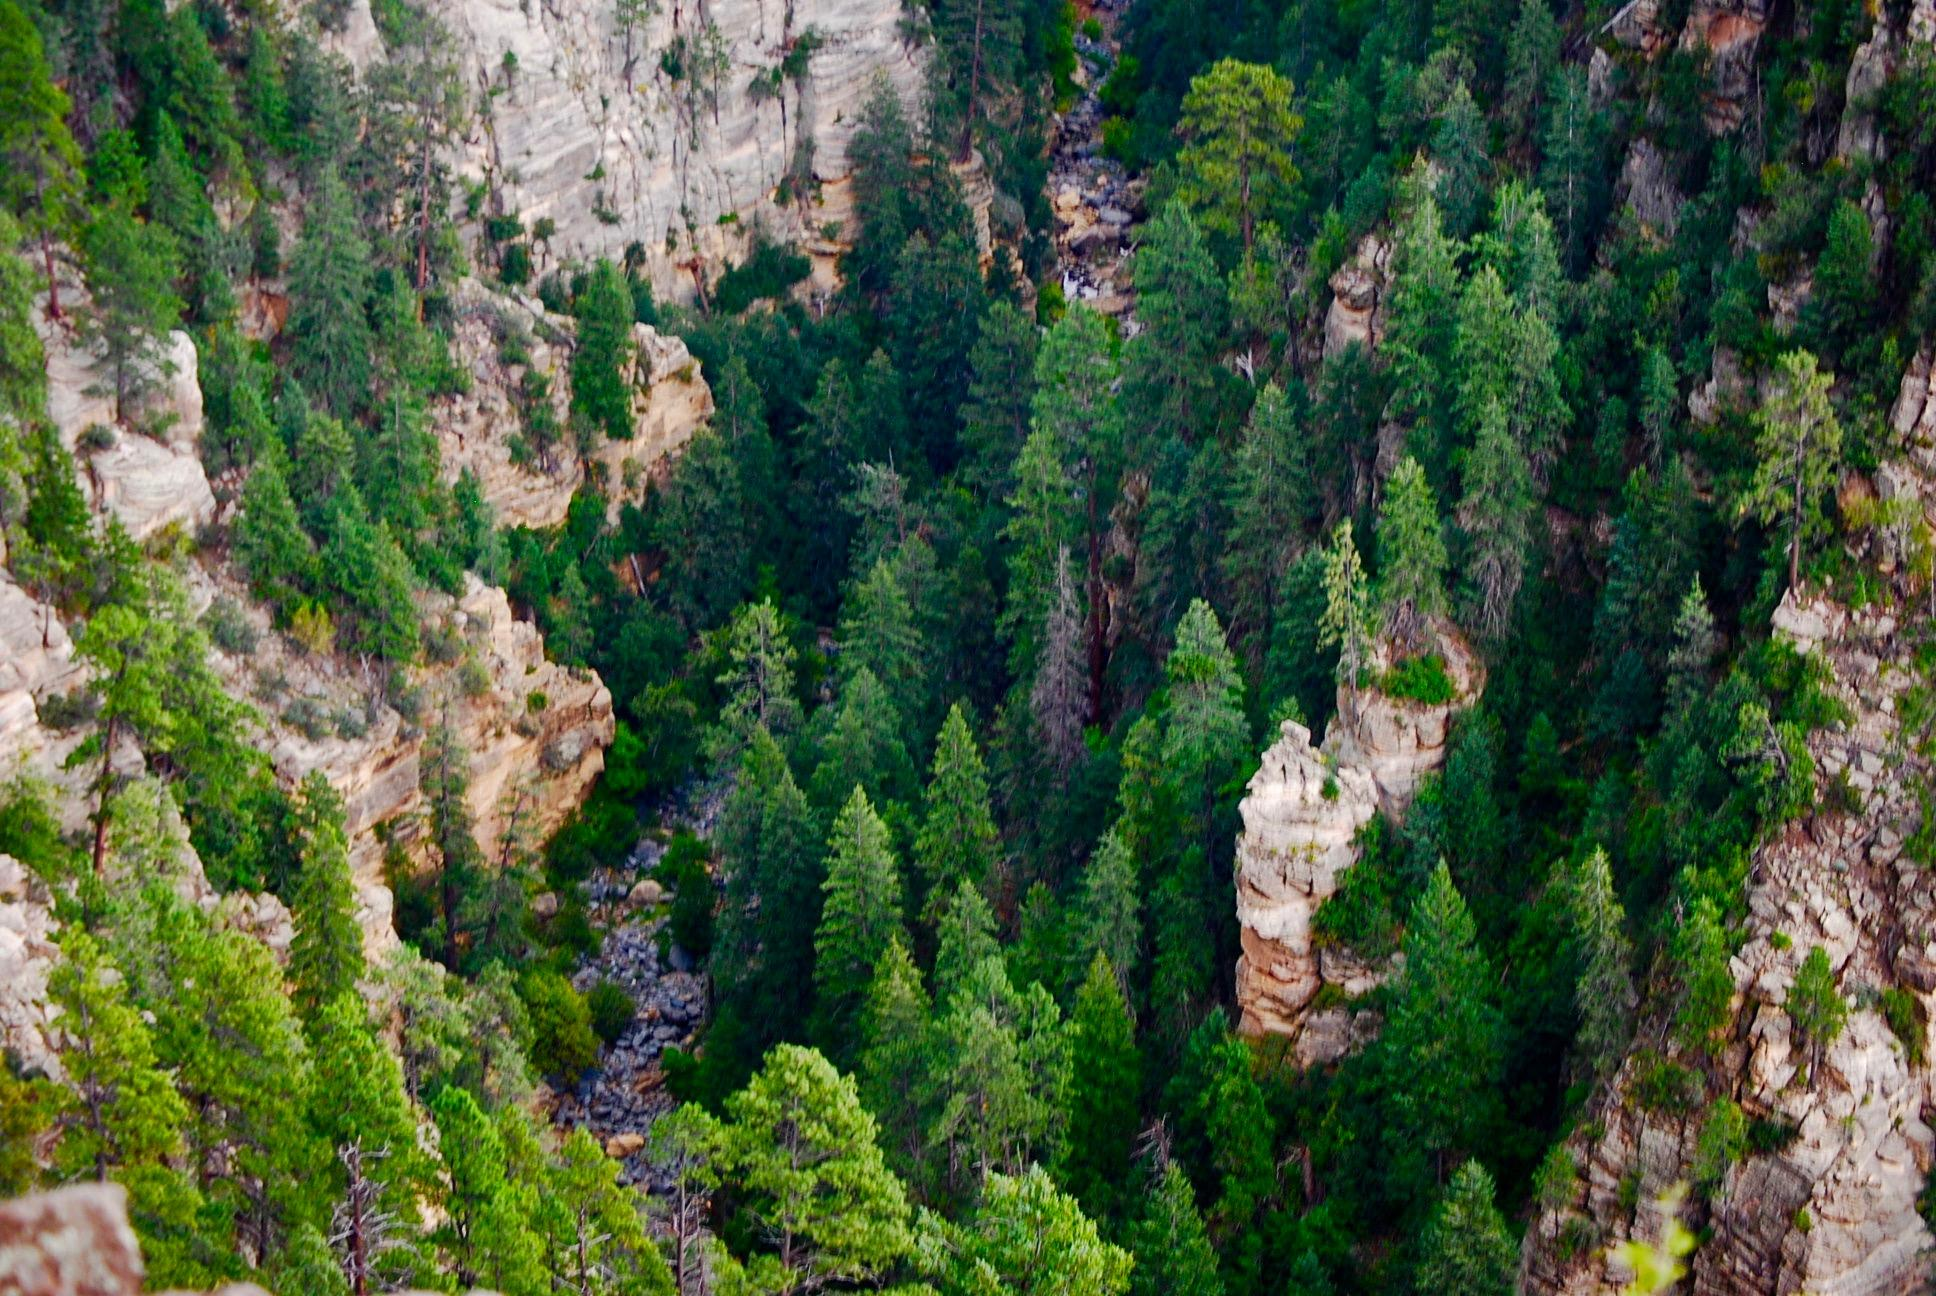 Pine trees in an Arizona canyon